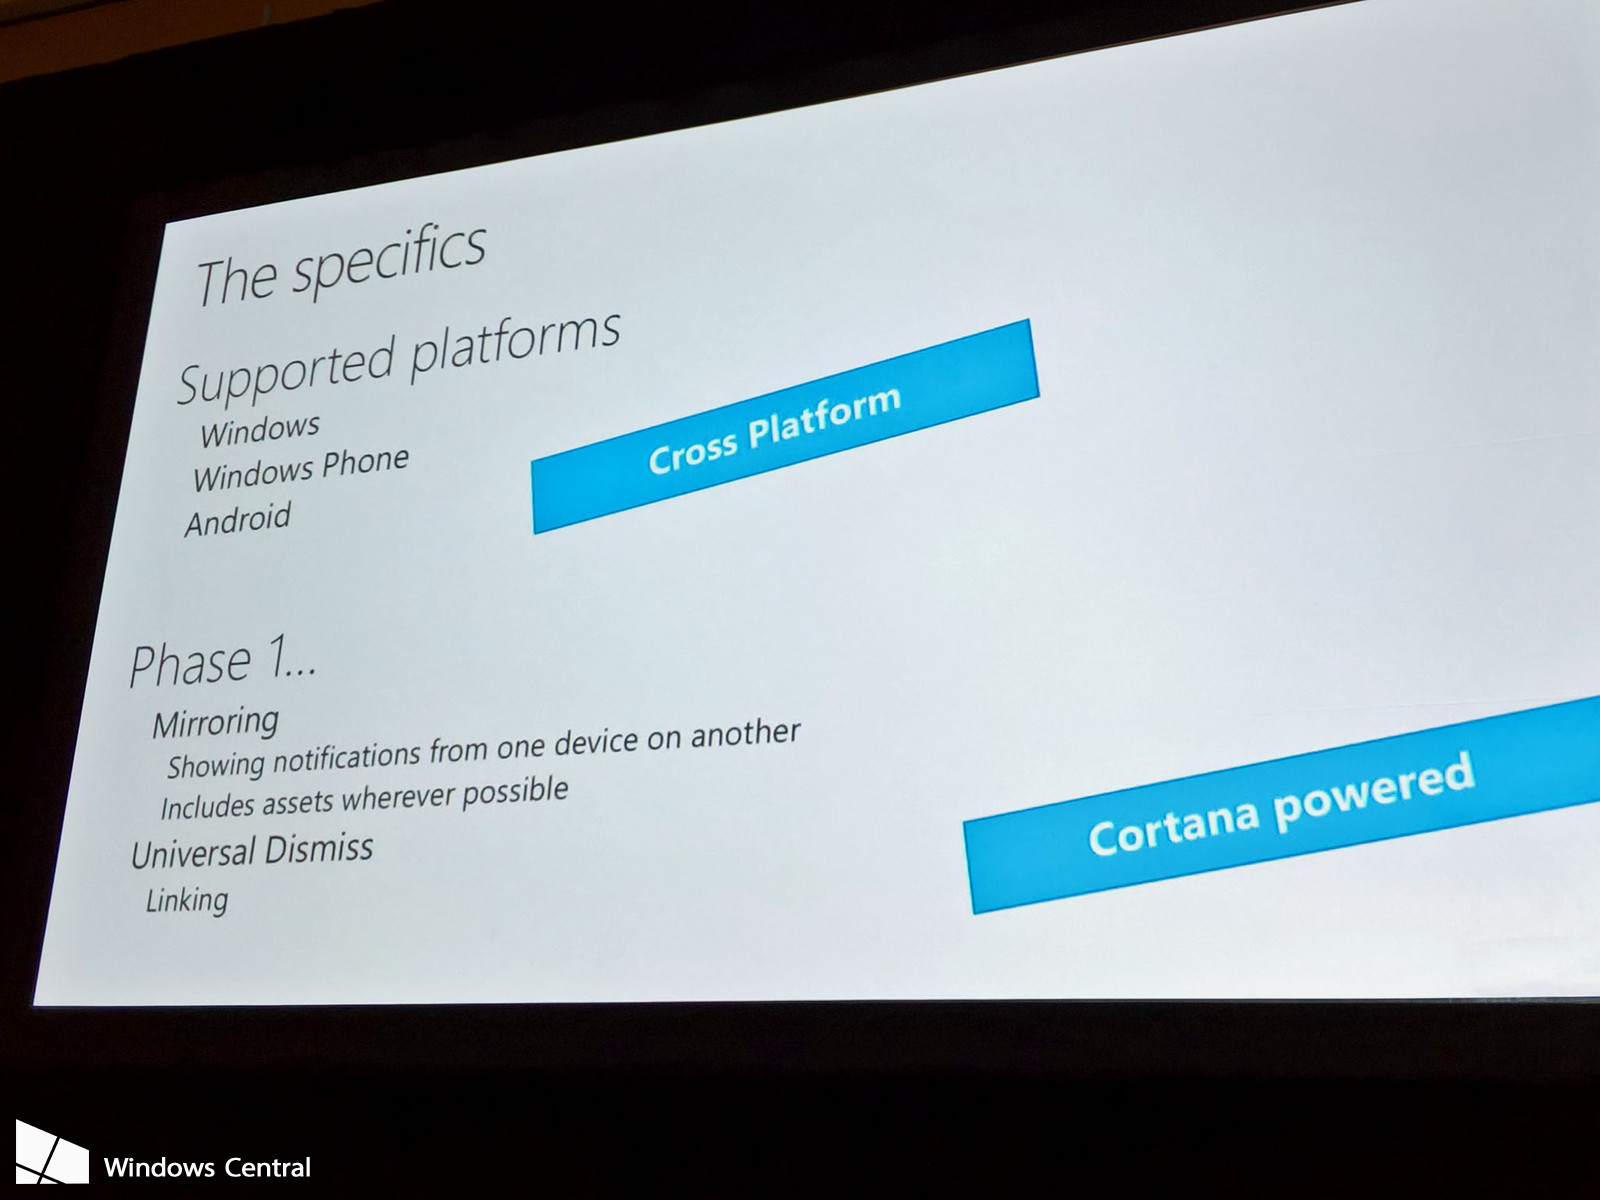 Windows 10 and Windows 10 Mobile support notifications from Android 1